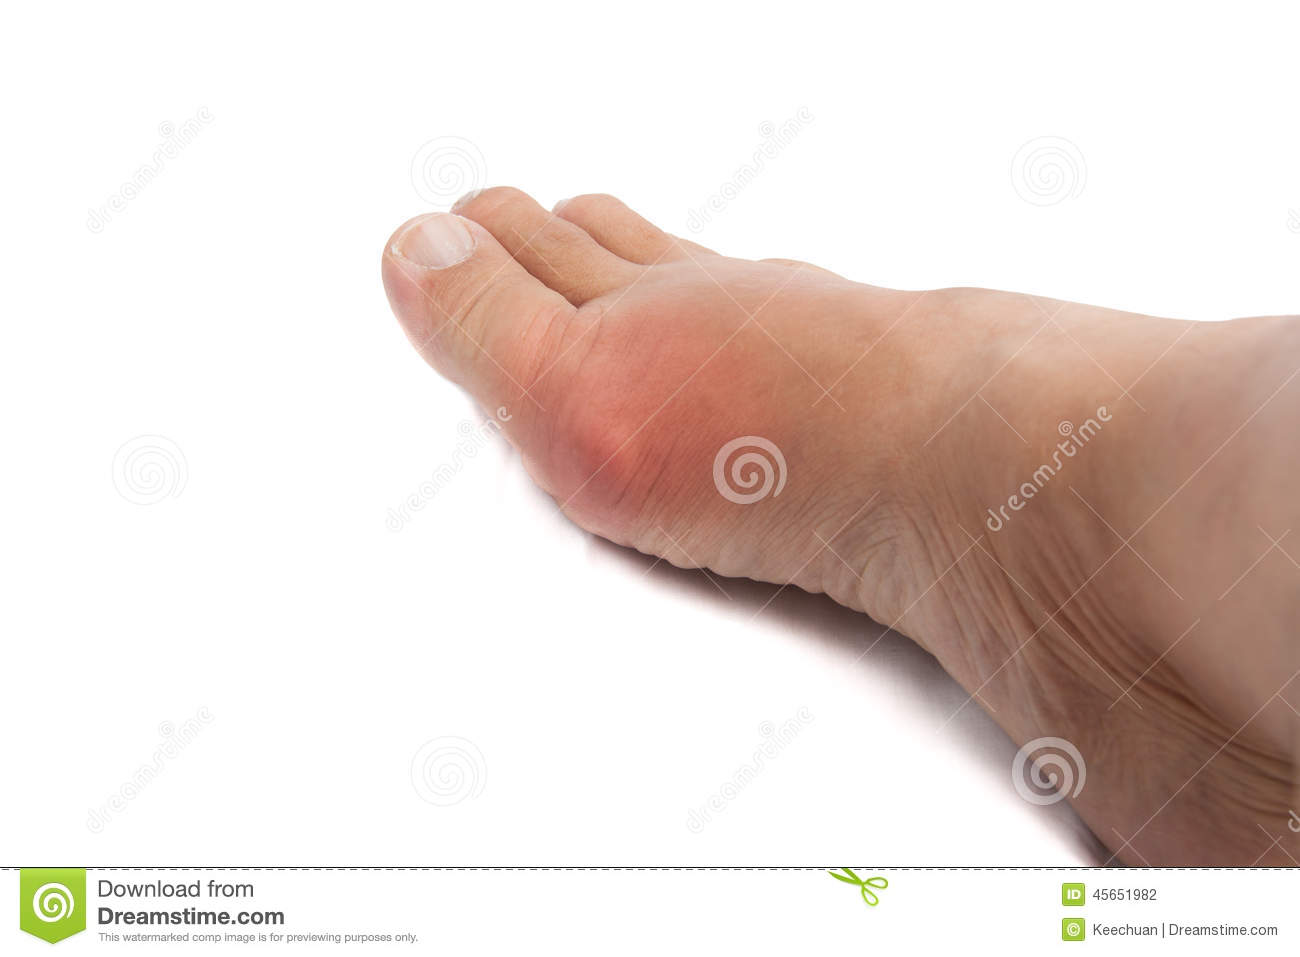 Swollen Foot With Gout Inflammation Stock Photo - Image ...